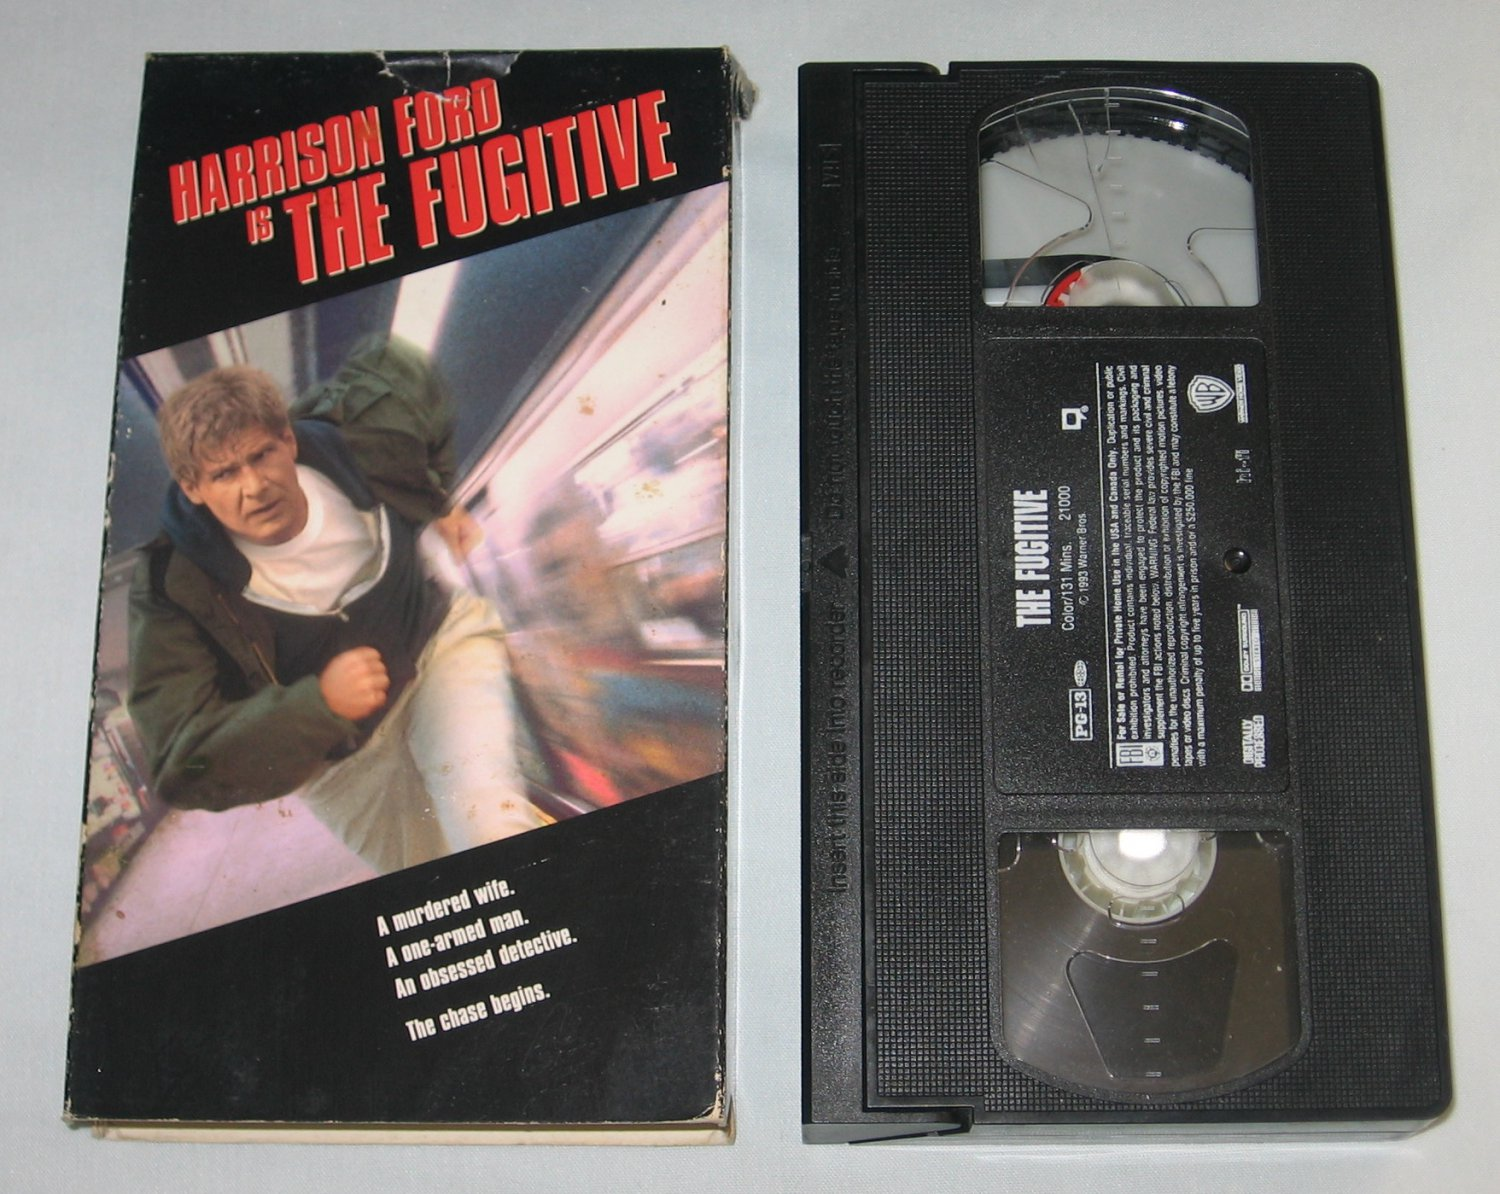 the fugitive vhs 1994 harrison ford tommy lee jones